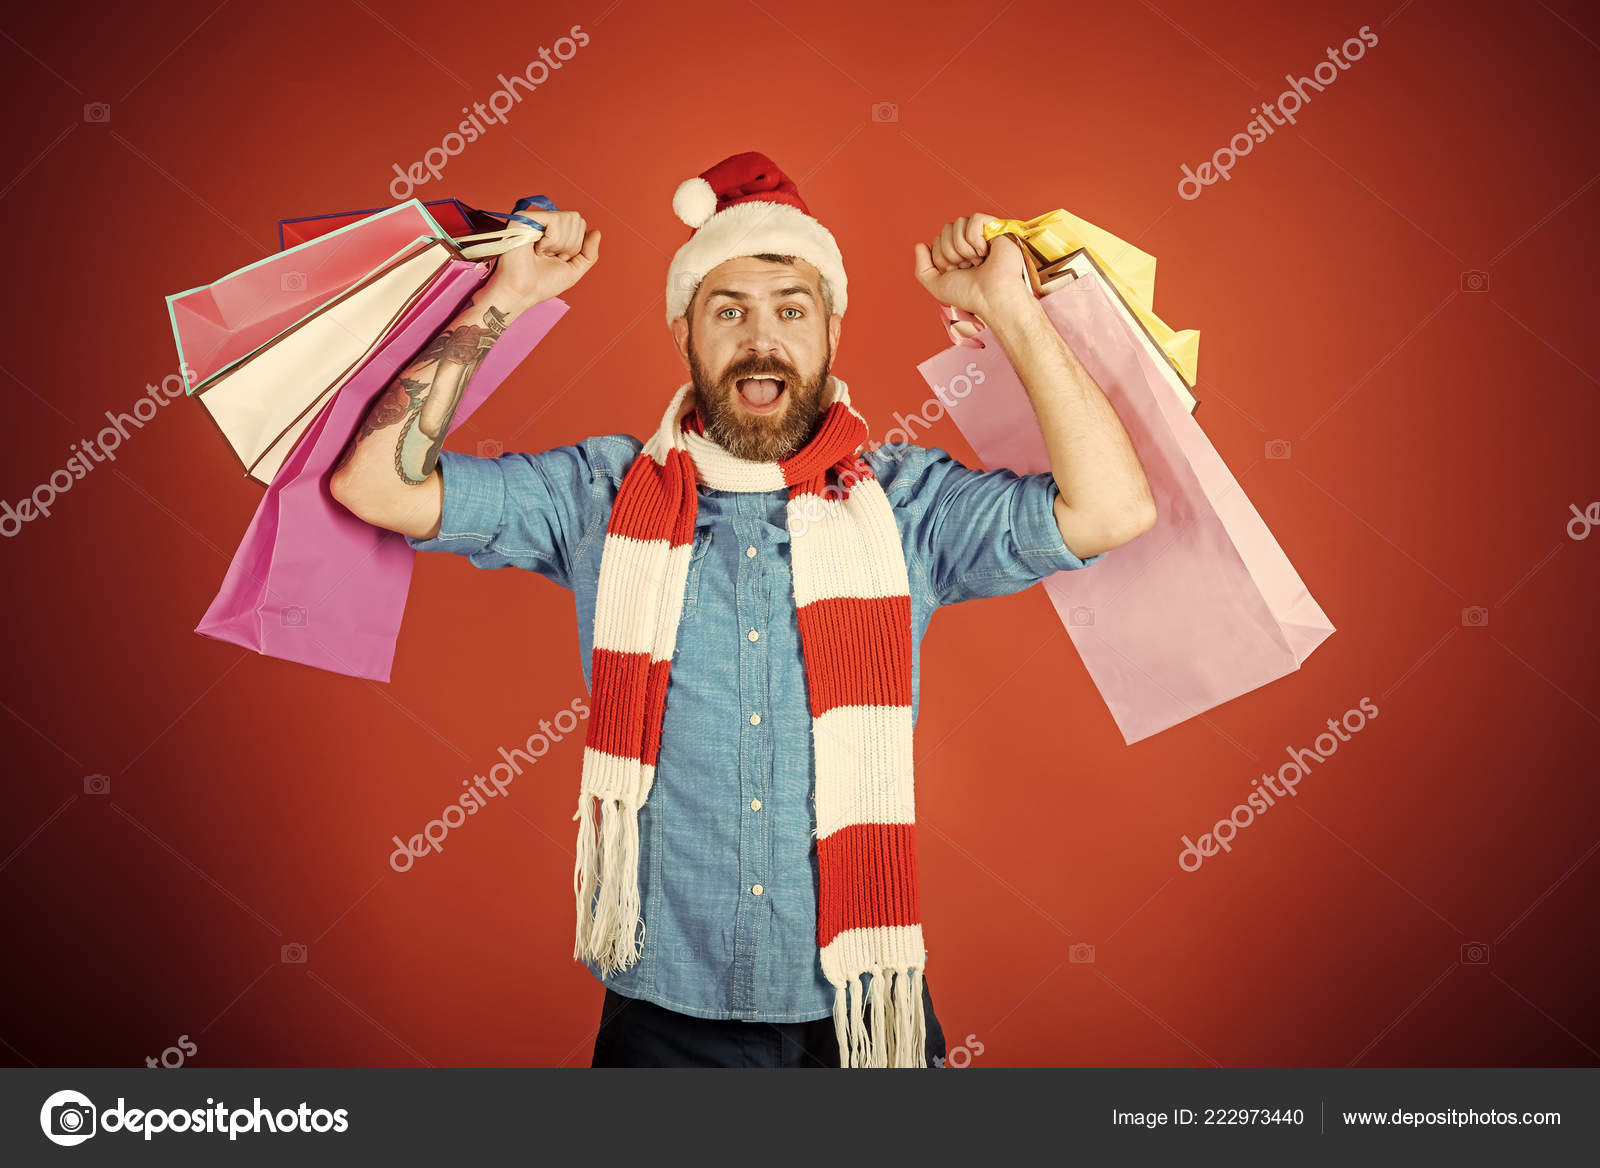 3927ed4fe779d depositphotos 222973440-stock-photo-christmas-man-shopper-happy-shout.jpg